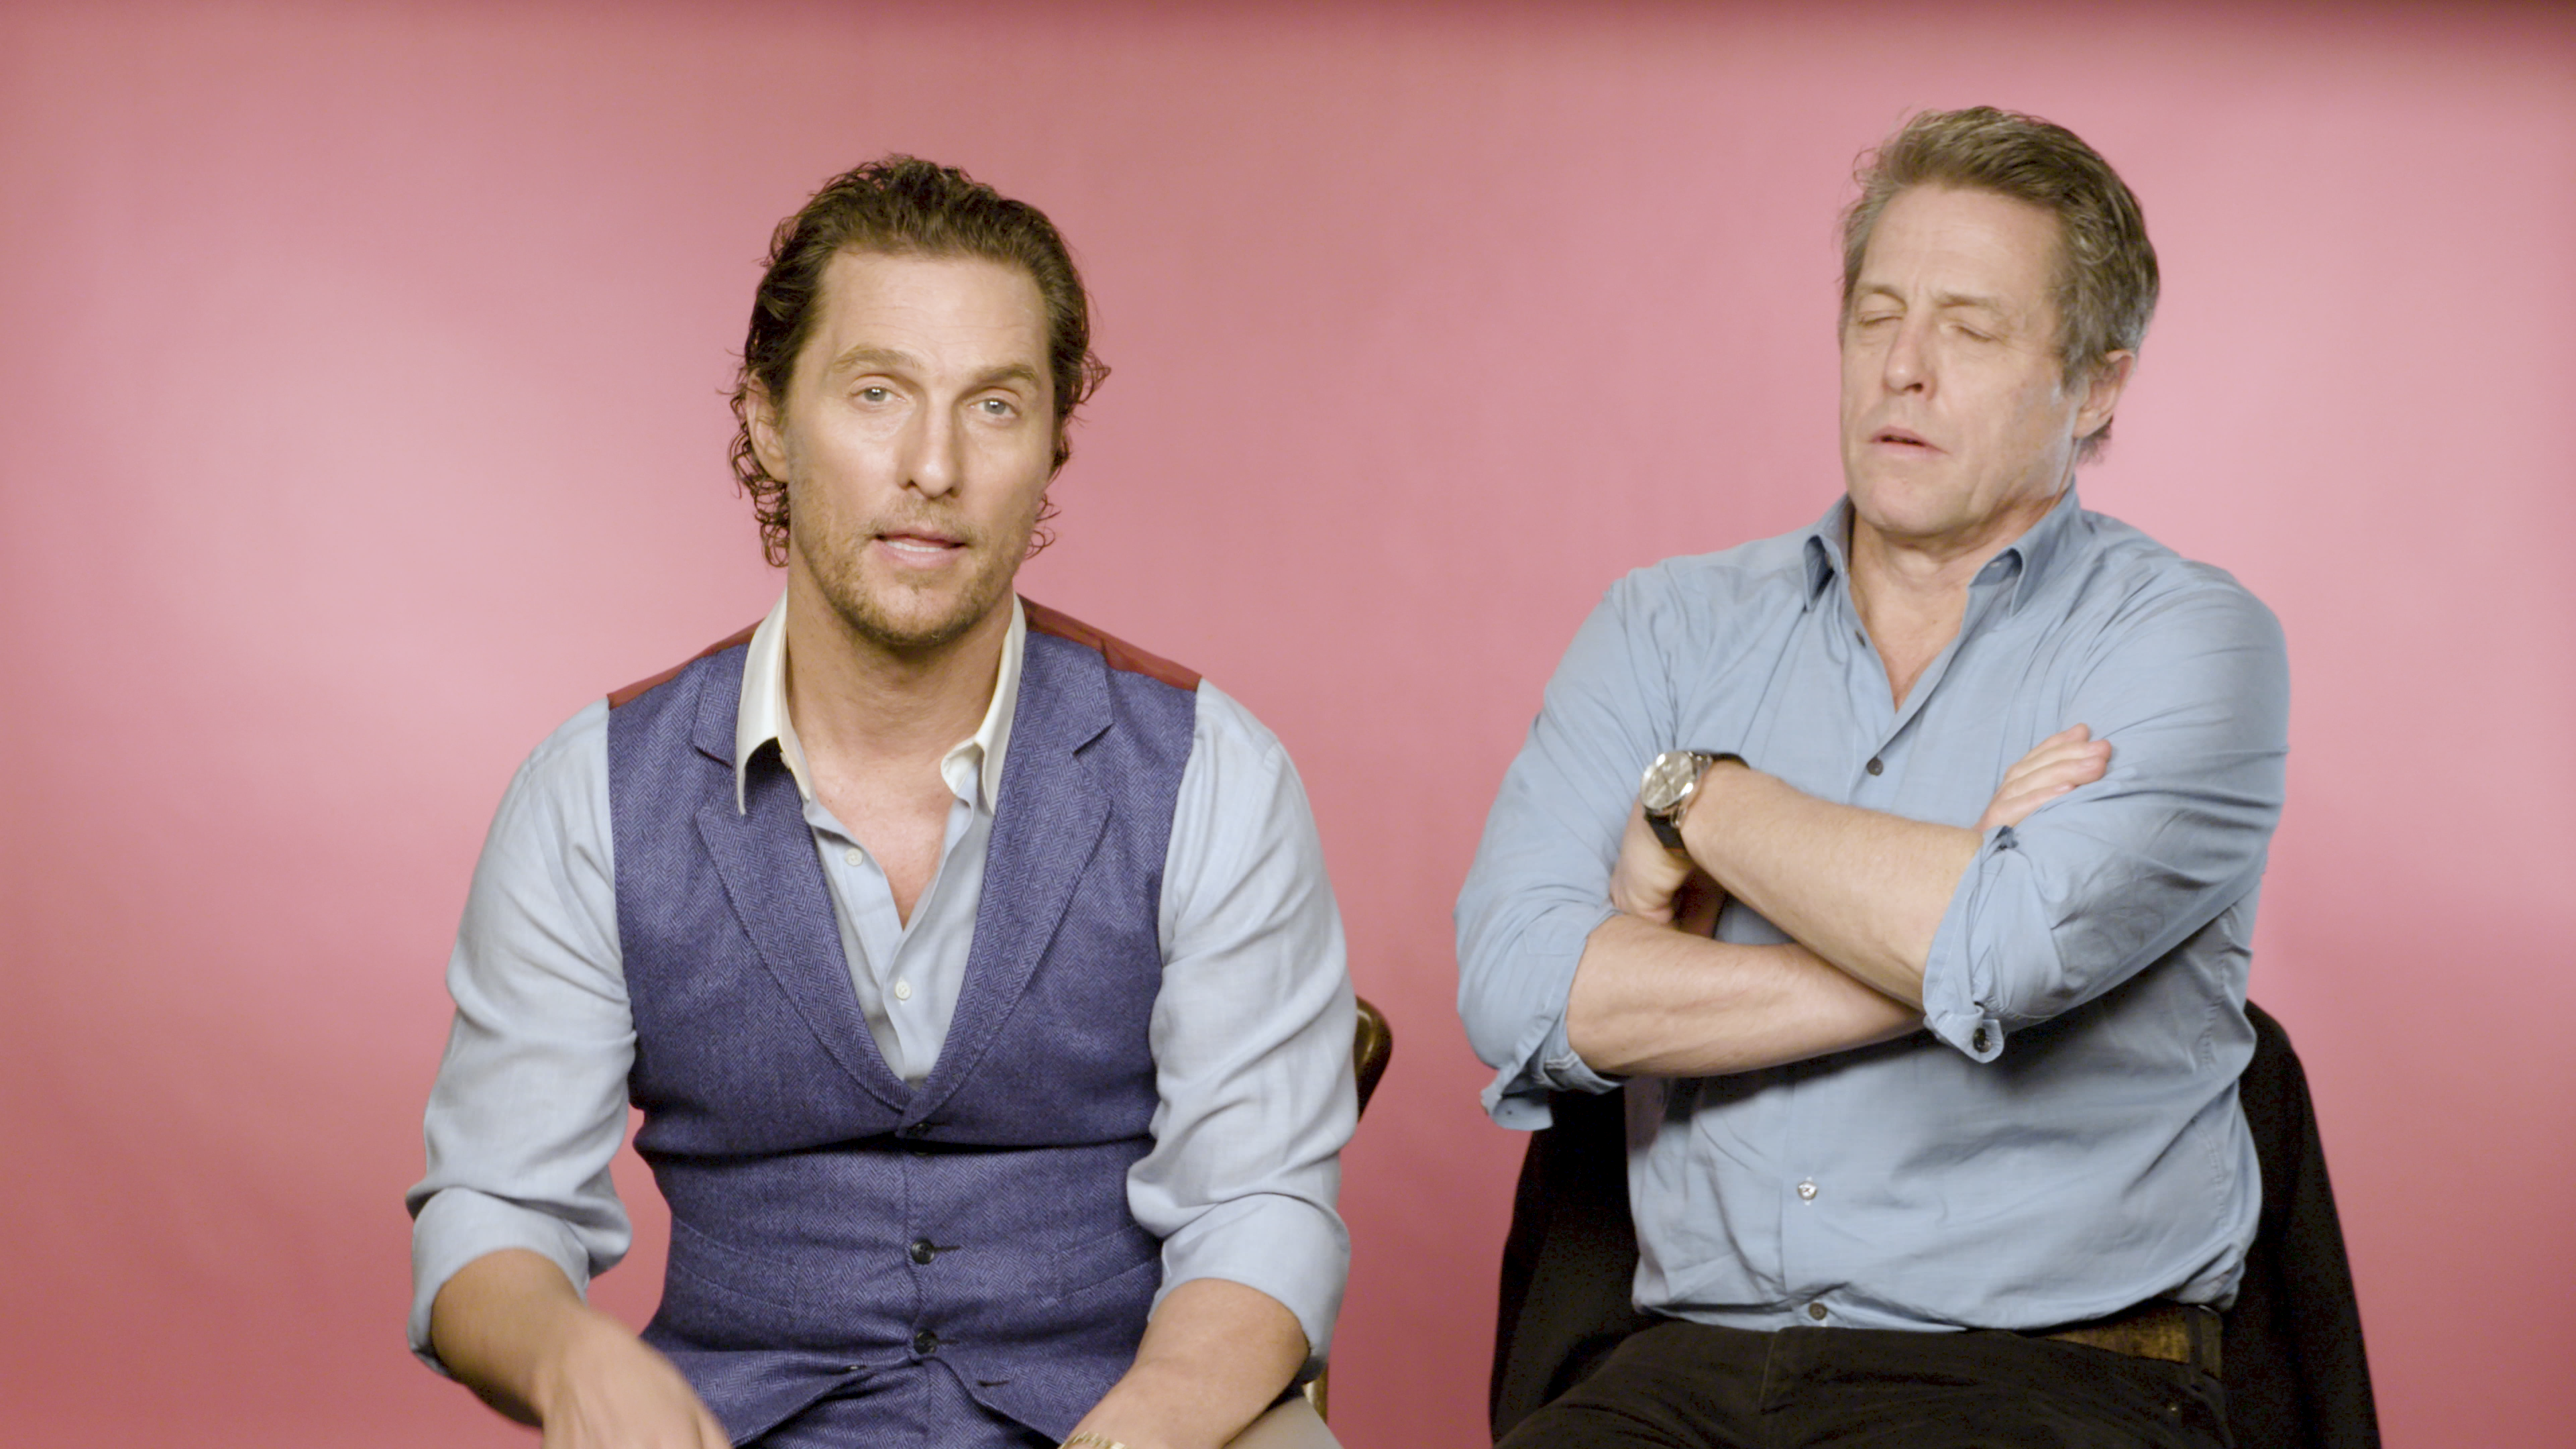 Matthew McConaughey Hugh Grant guy Ritchie The Gentleman